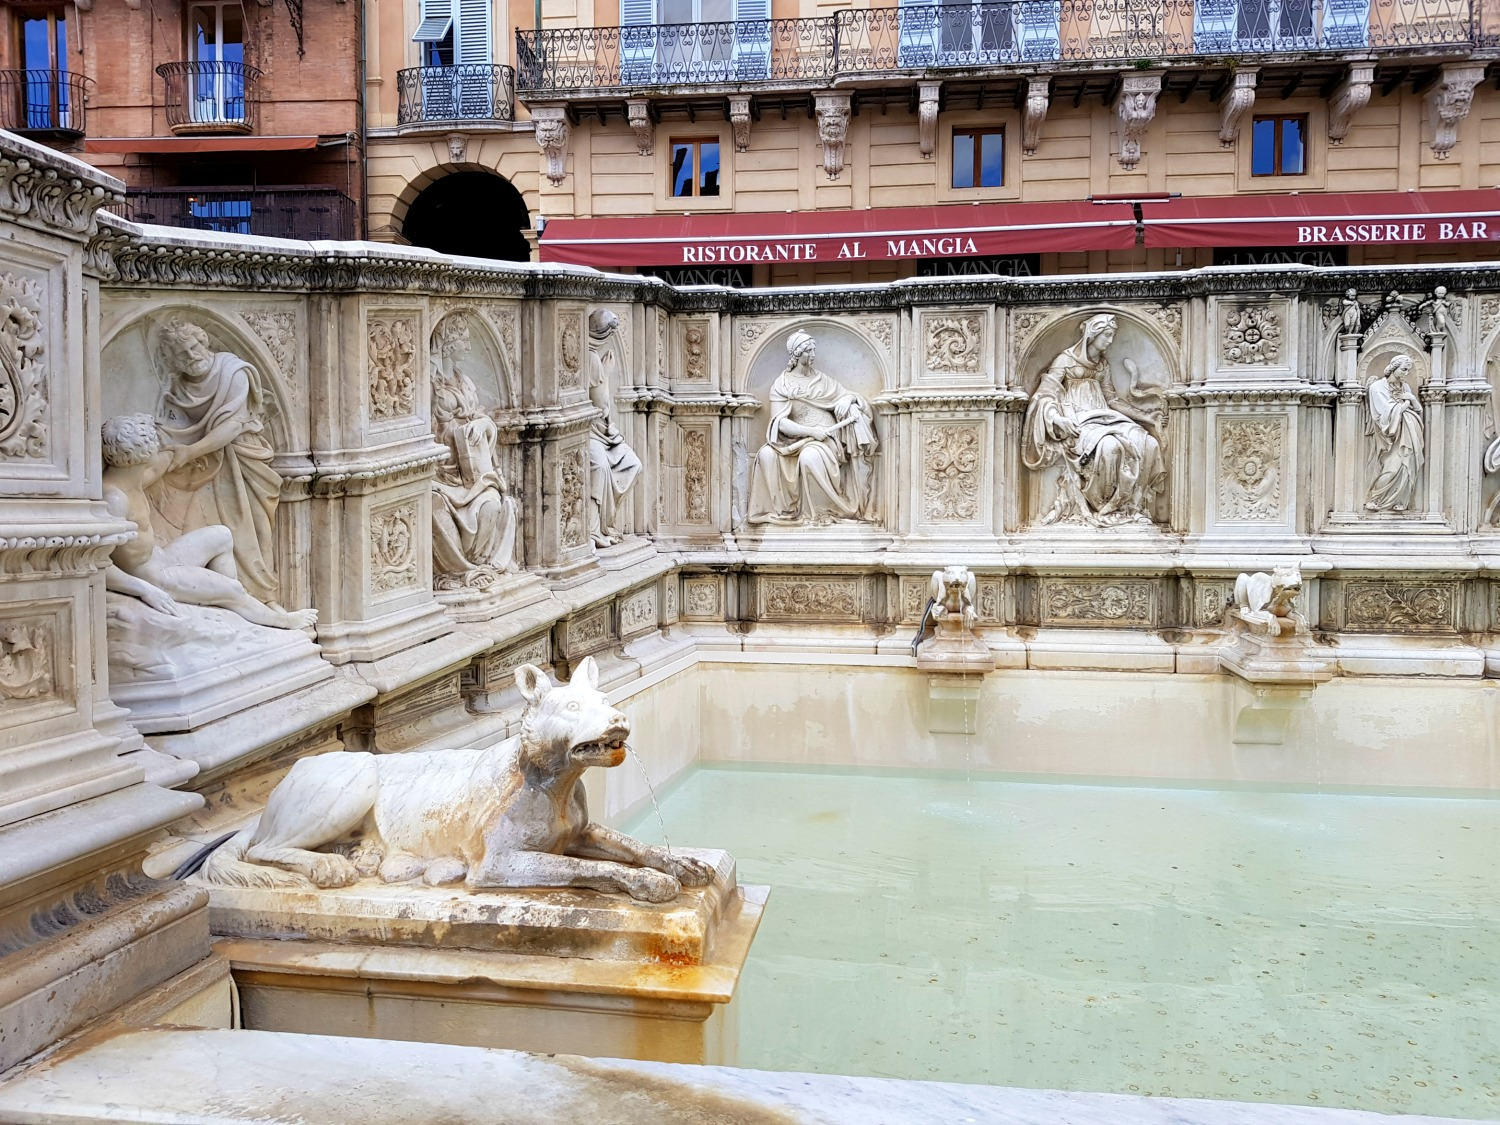 Stone wolves on the fountain in the Piazza del Campo where the Palio is run - exploring Siena with kids, our tour discovering art, history and animals